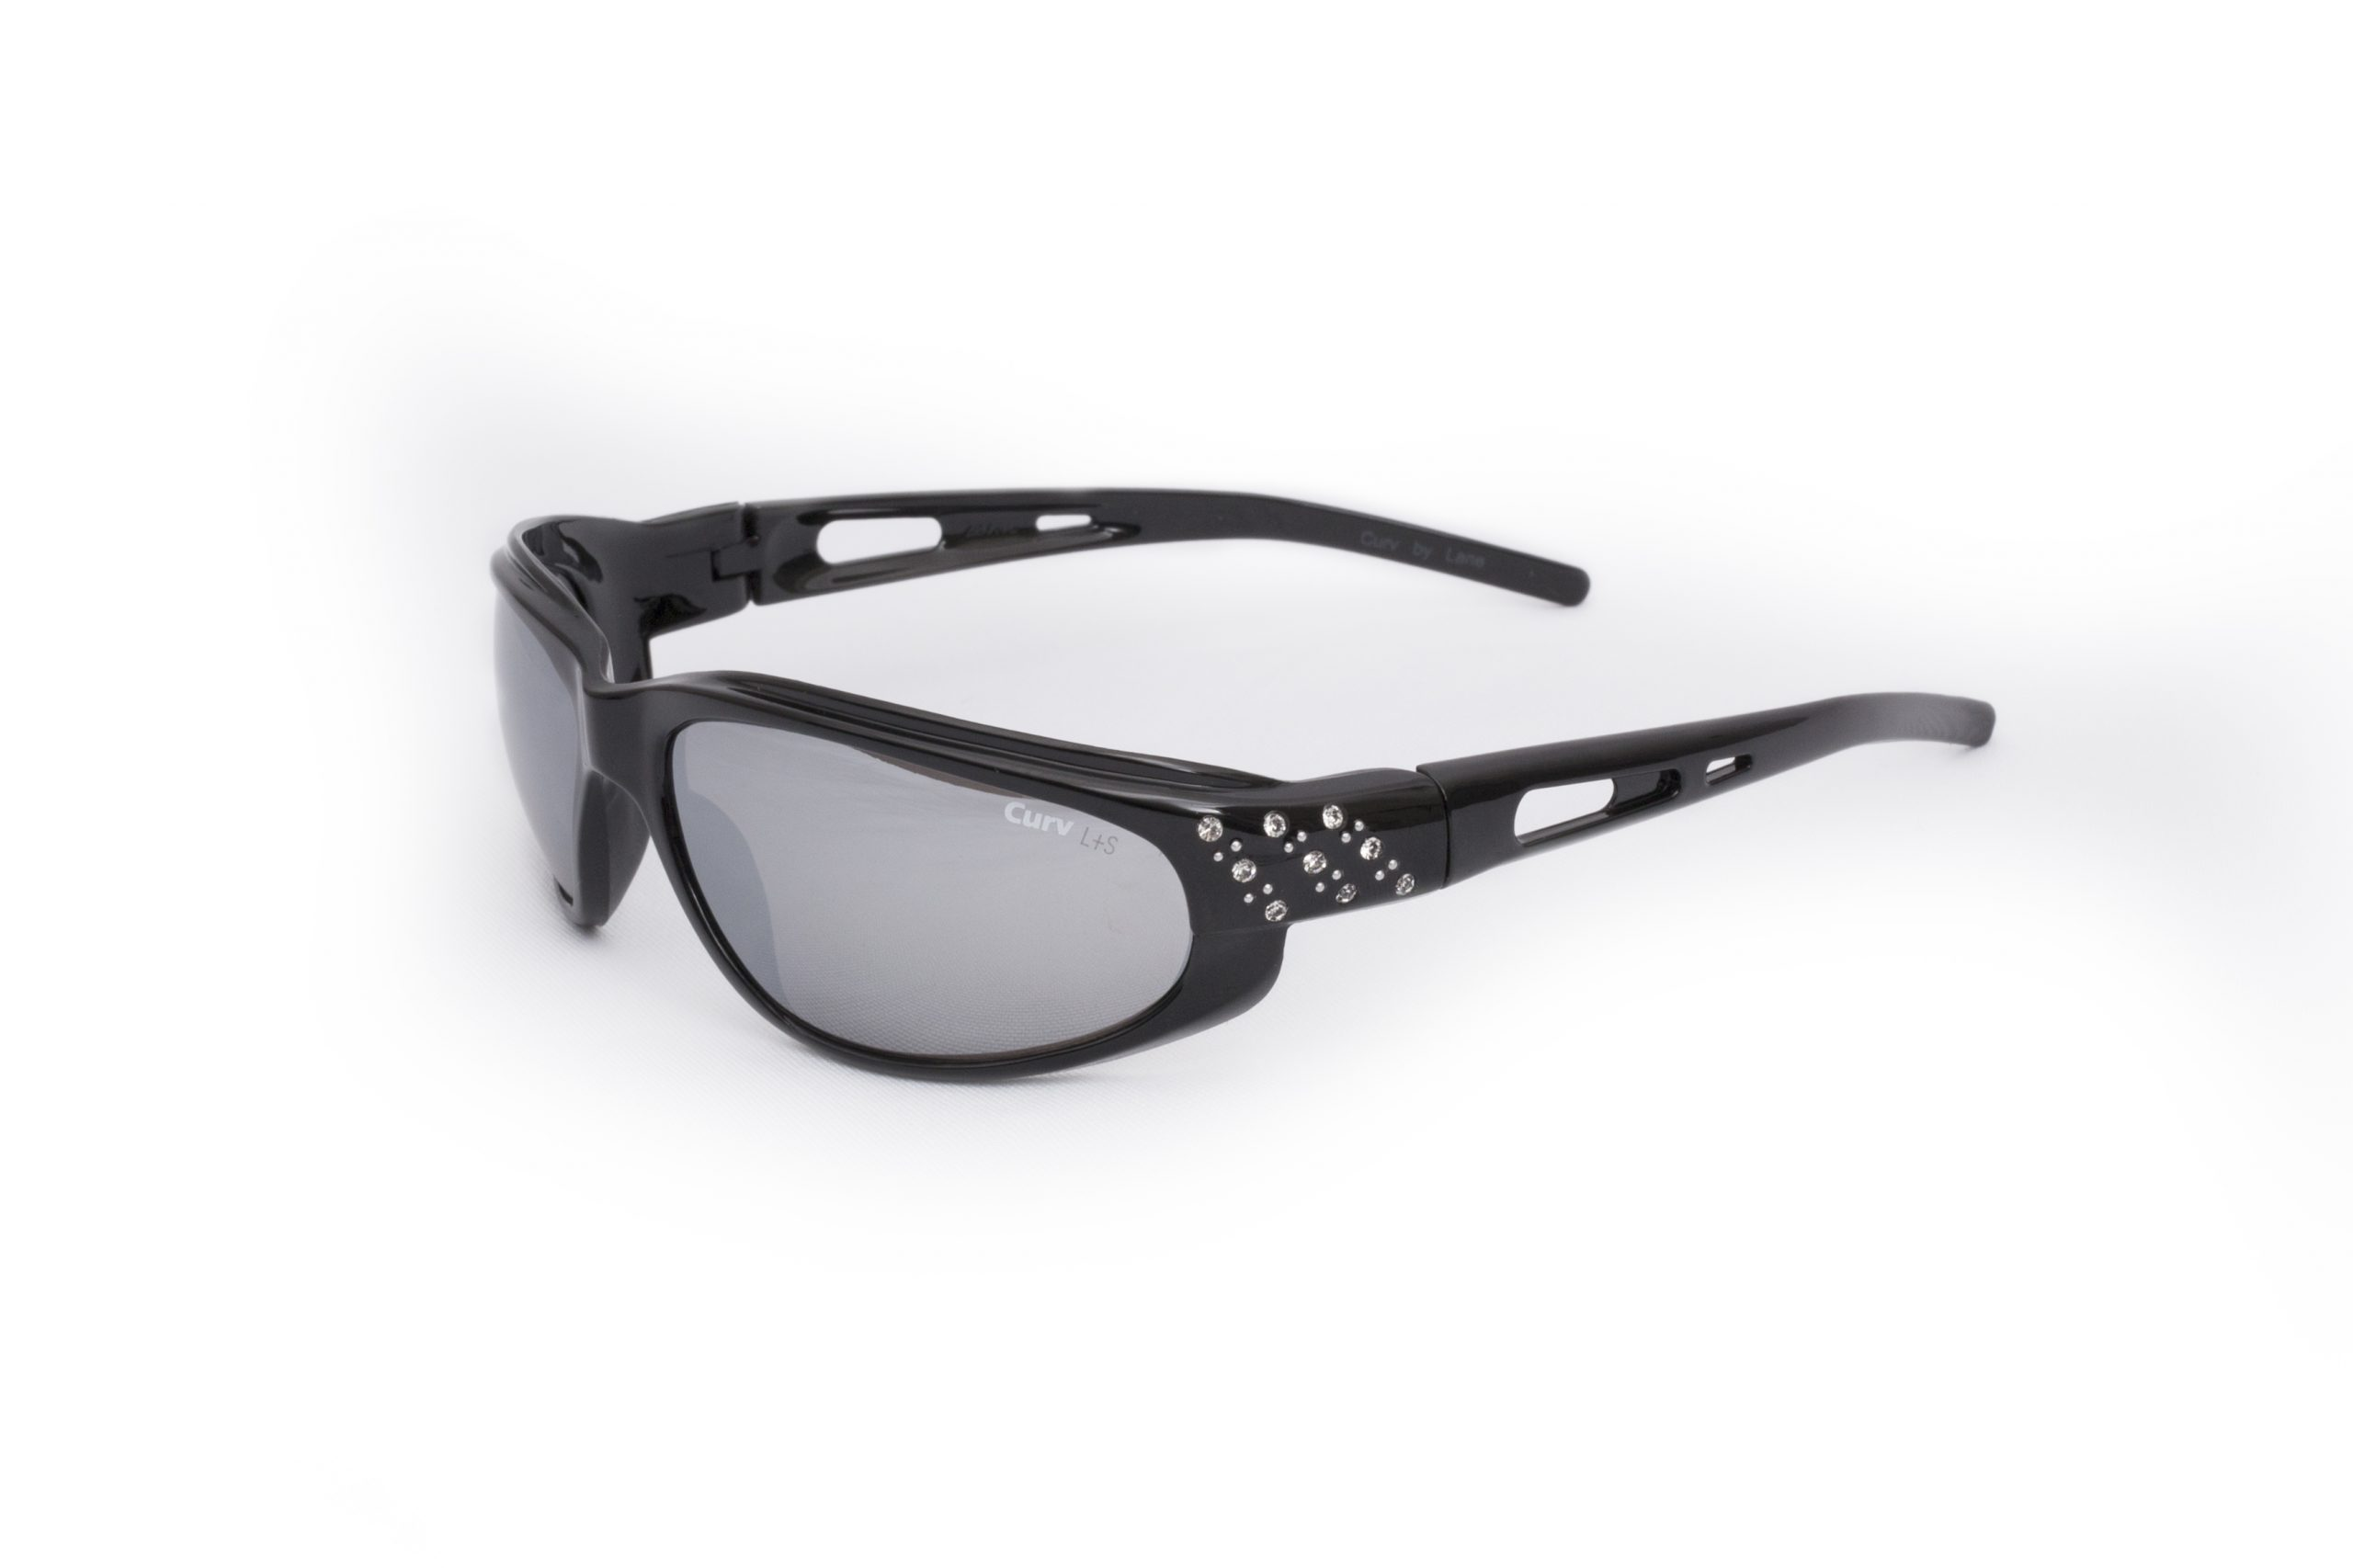 01-43 - Curv Glossy Black Sunglasses with Smoke Lenses and Glossy Black Frames and Rhinestones